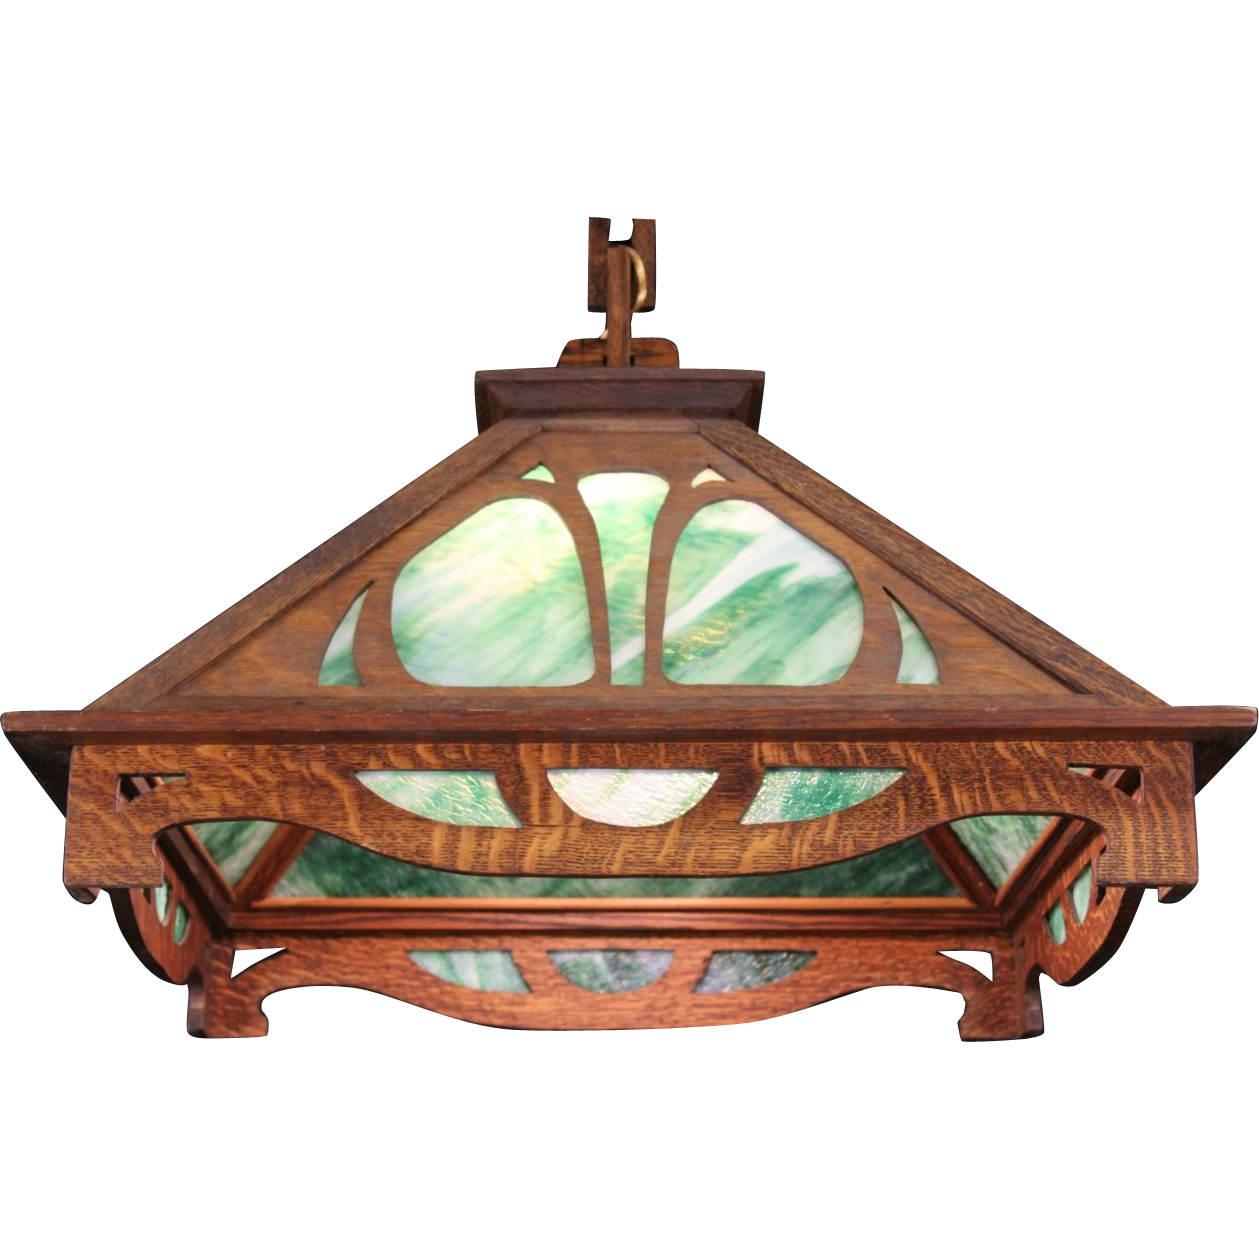 Arts crafts mission oak 1905 stained glass pendant chandelier arts crafts mission oak 1905 stained glass pendant chandelier light fixture arubaitofo Choice Image